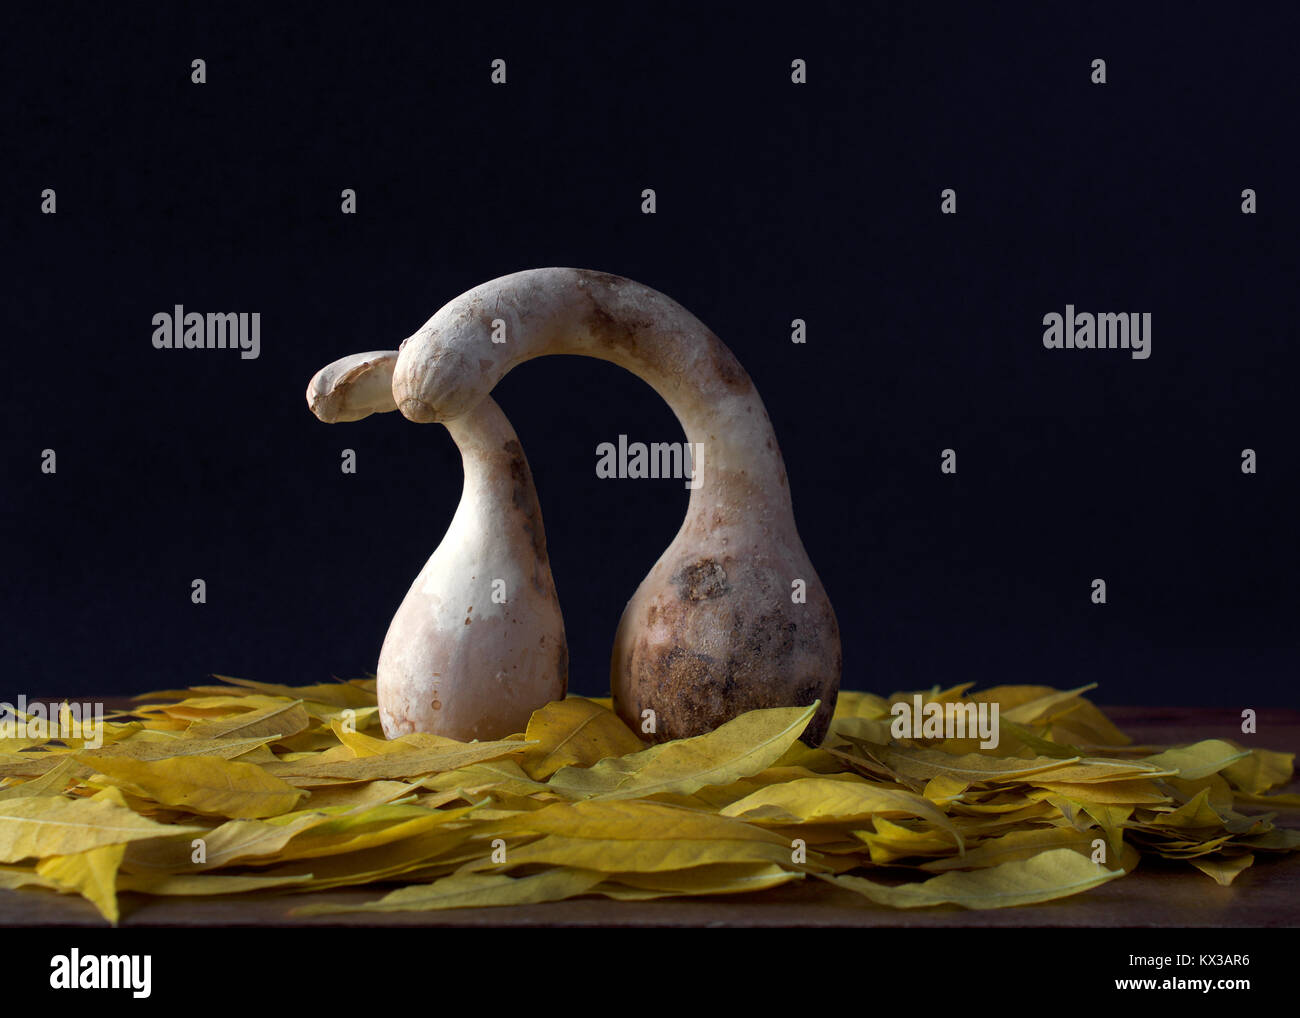 Still life showing two old, bird shaped gourds with long necks and beaks, one behind the other, in affectionate - Stock Image